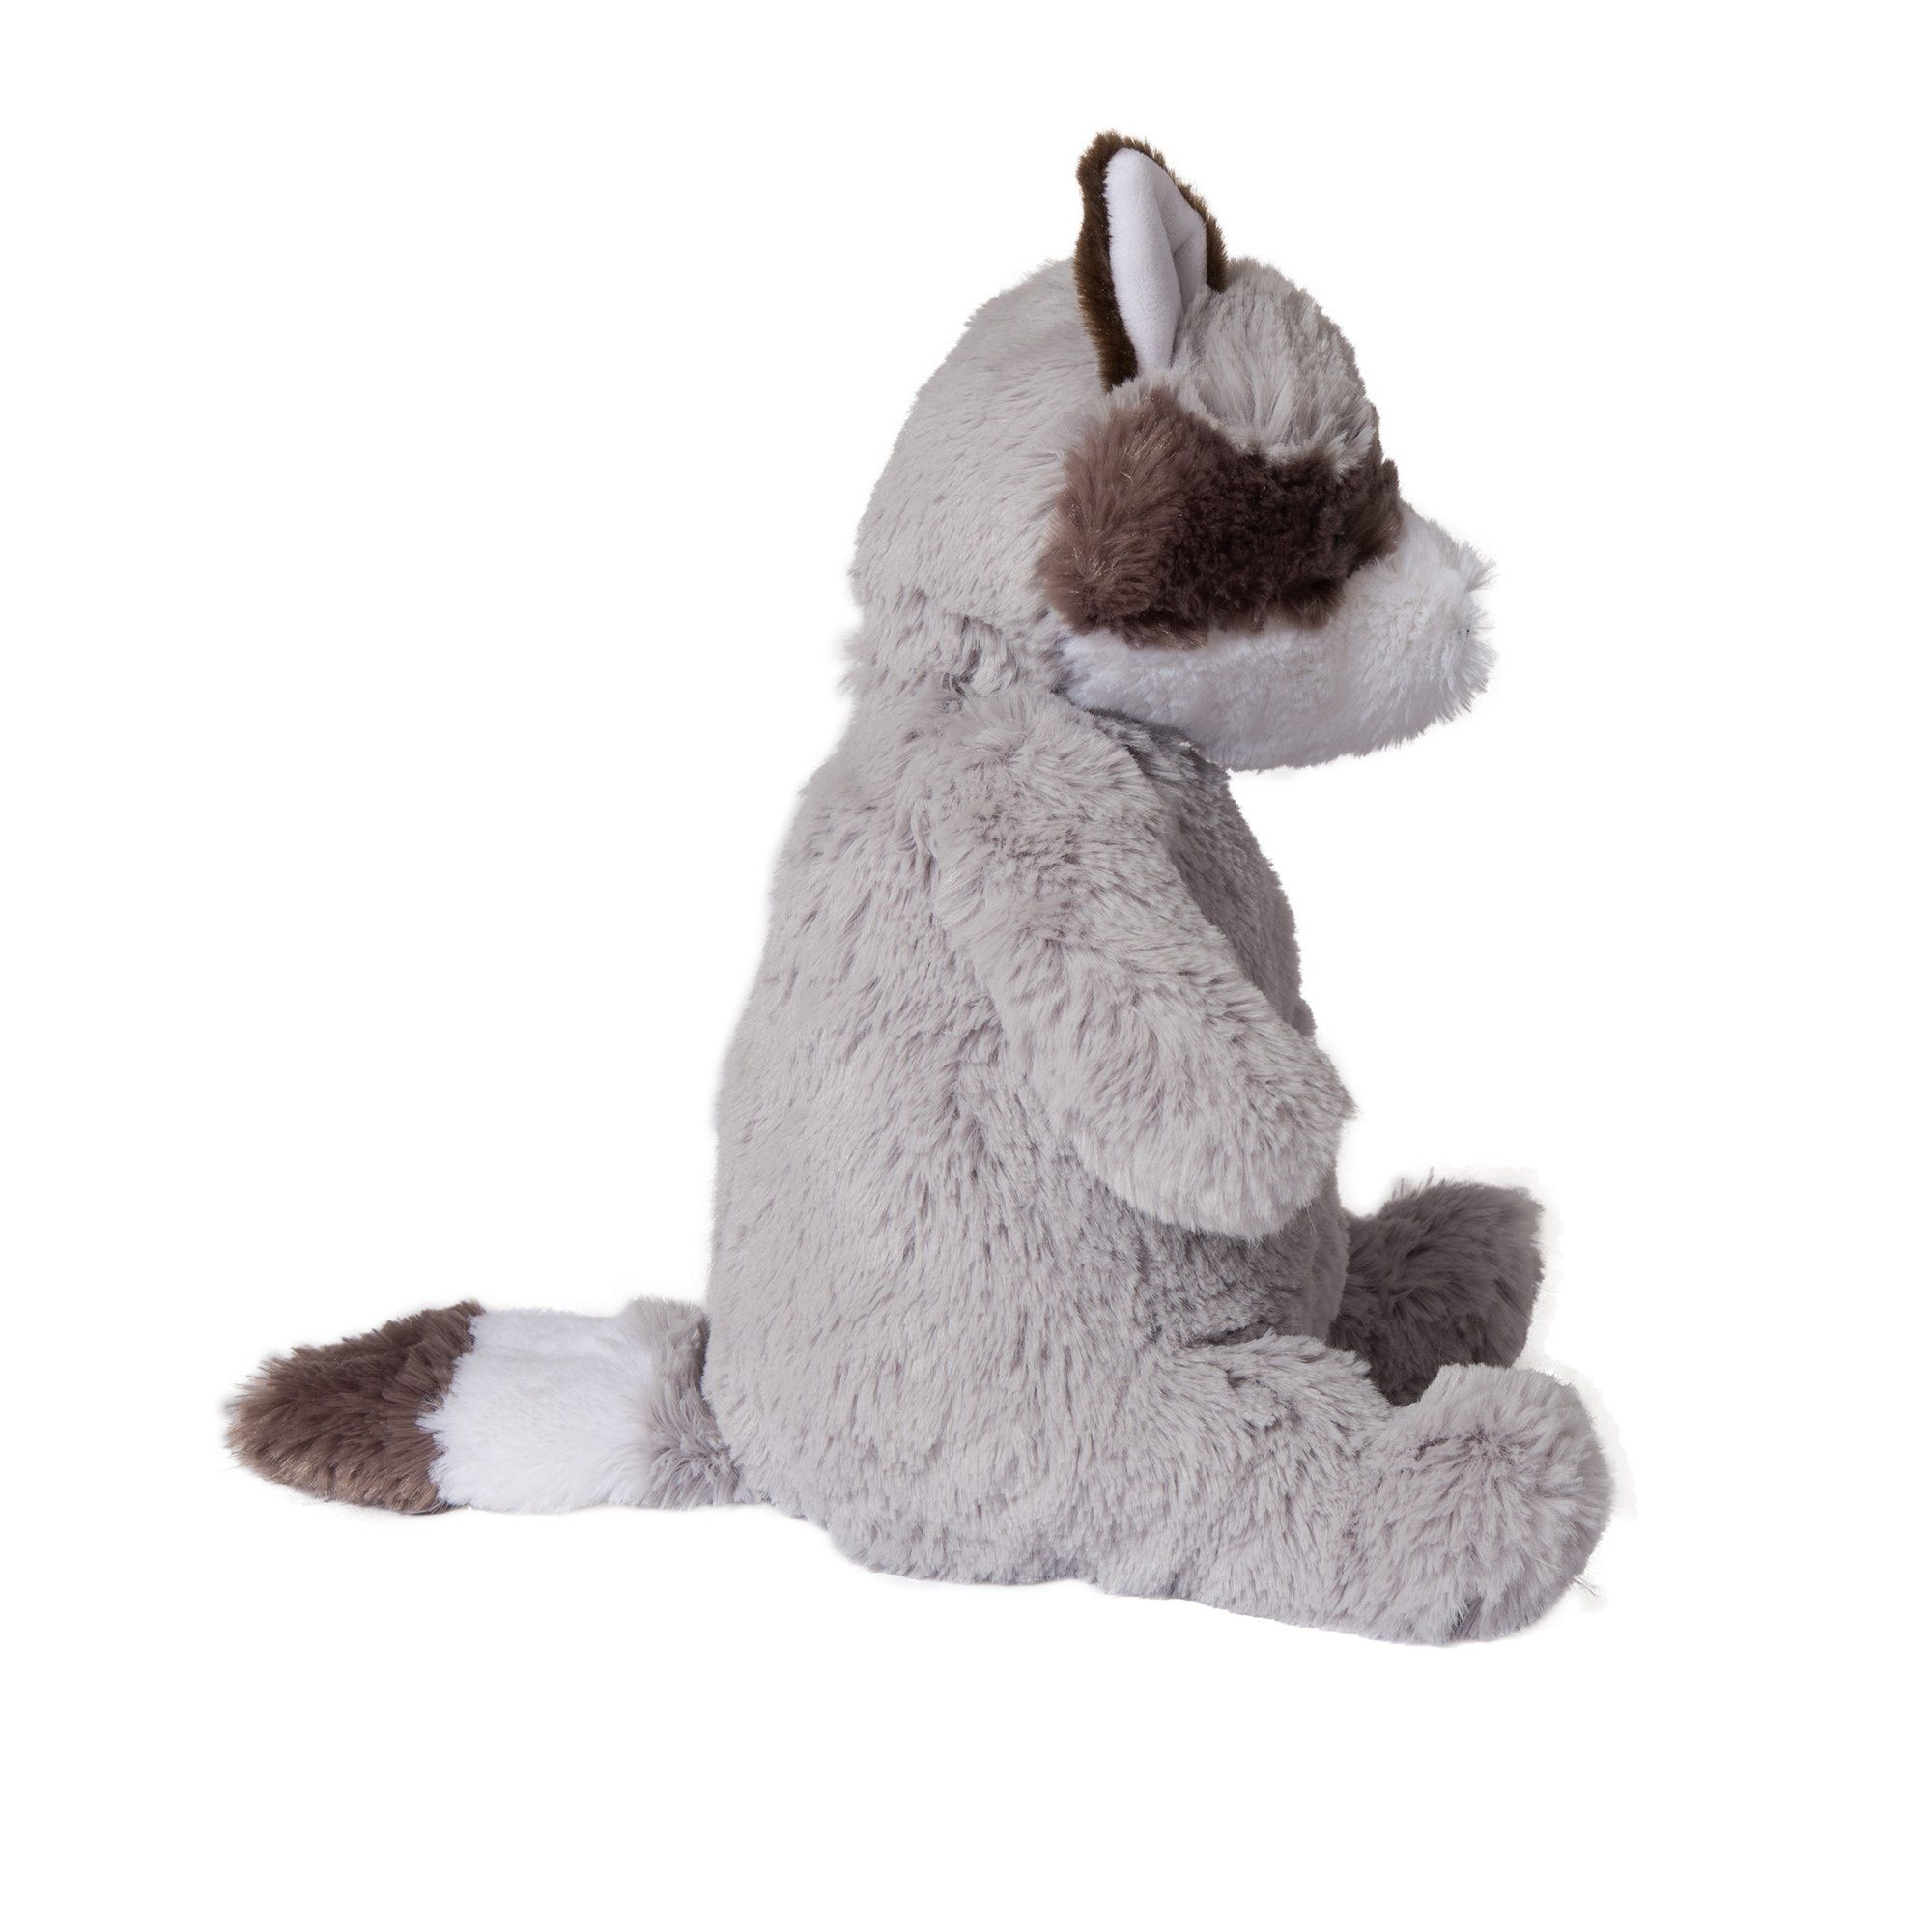 Manhattan Toy Woodlanders Charlie Raccoon 12 Plush Click Image For Even More Information T Manhattan Toy Plush Stuffed Animals Animal Plush Toys